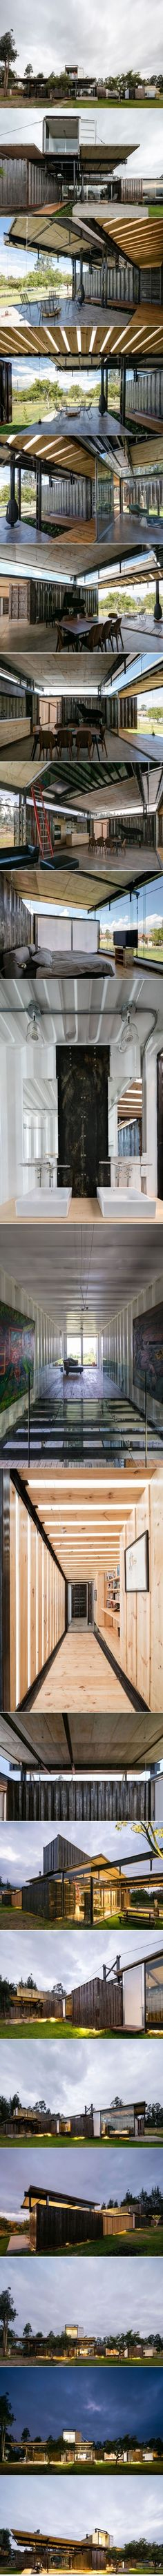 Explore this Shipping Container House by Daniel Moreno Flores & Sebastian Calero in 3D Virtual Reality | HomeDSGN